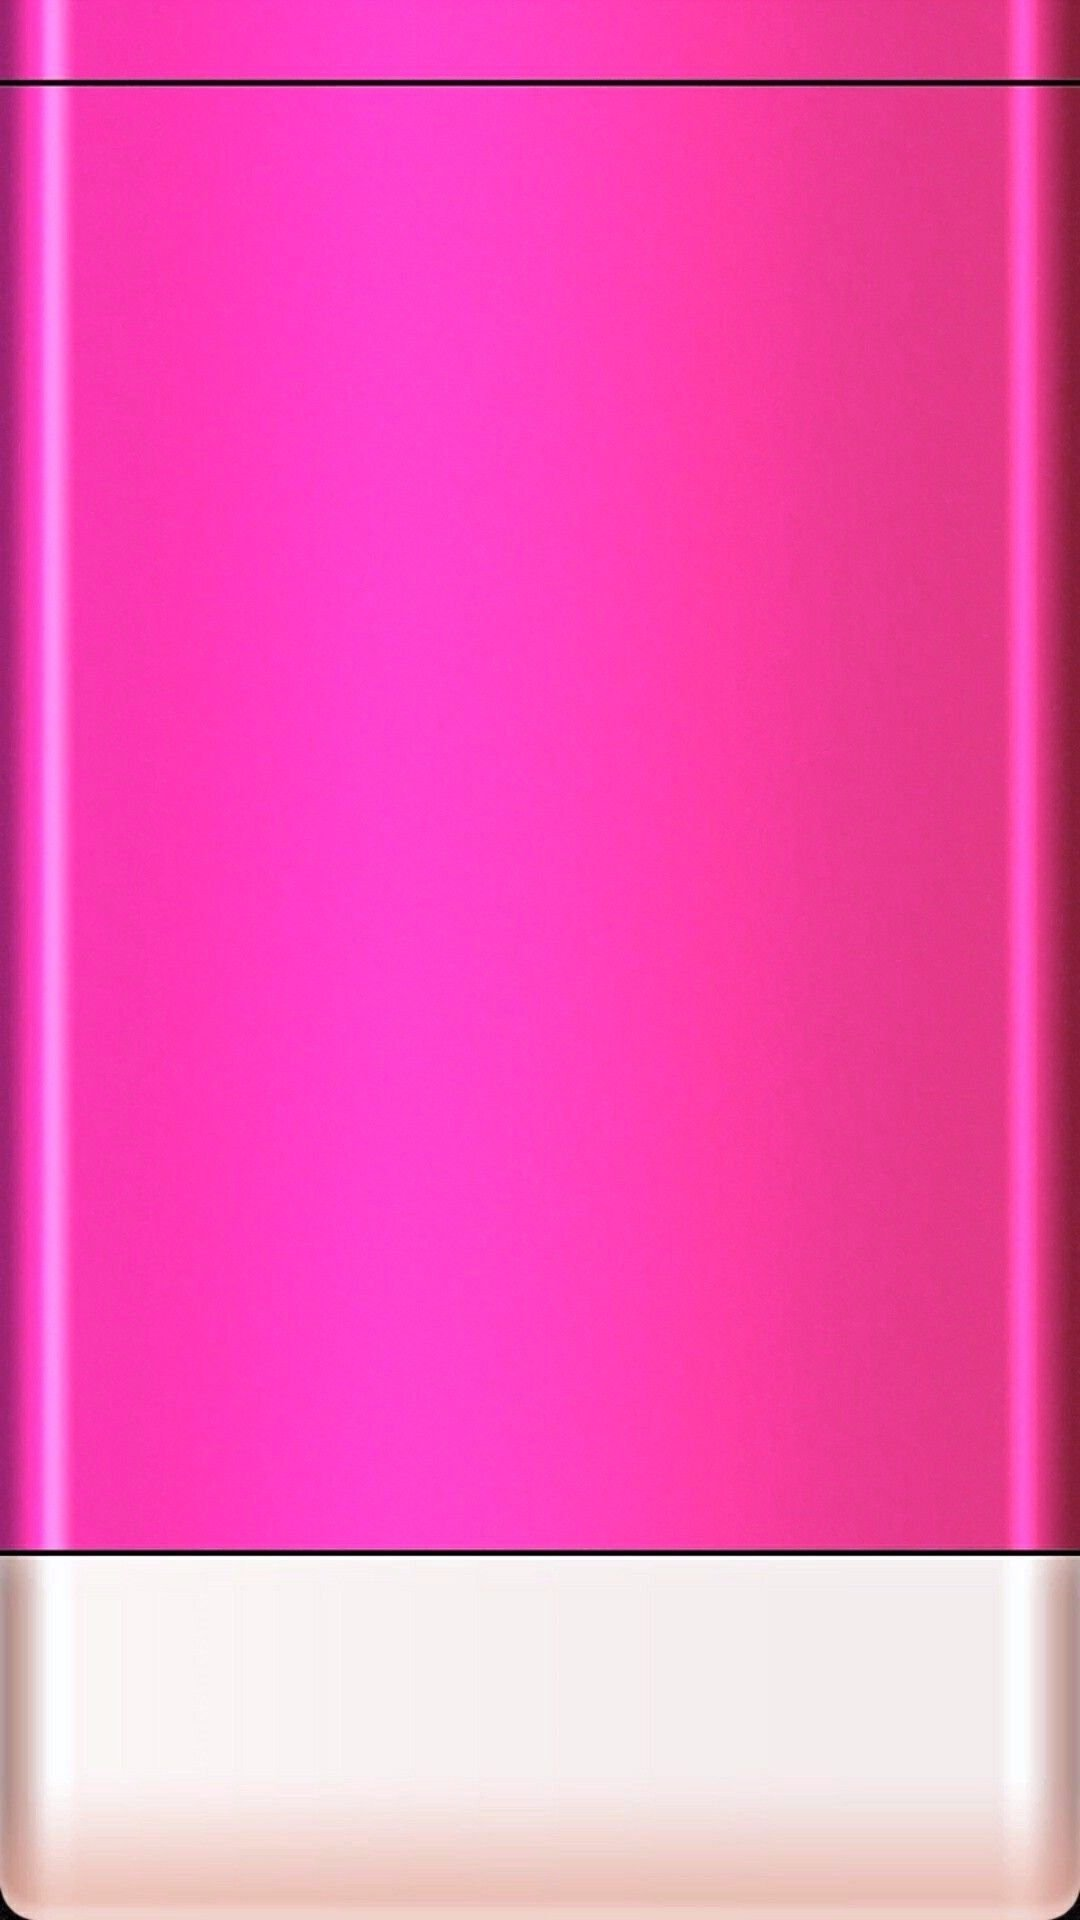 Trs Party Color Background 3041769 Hd Wallpaper Backgrounds Download